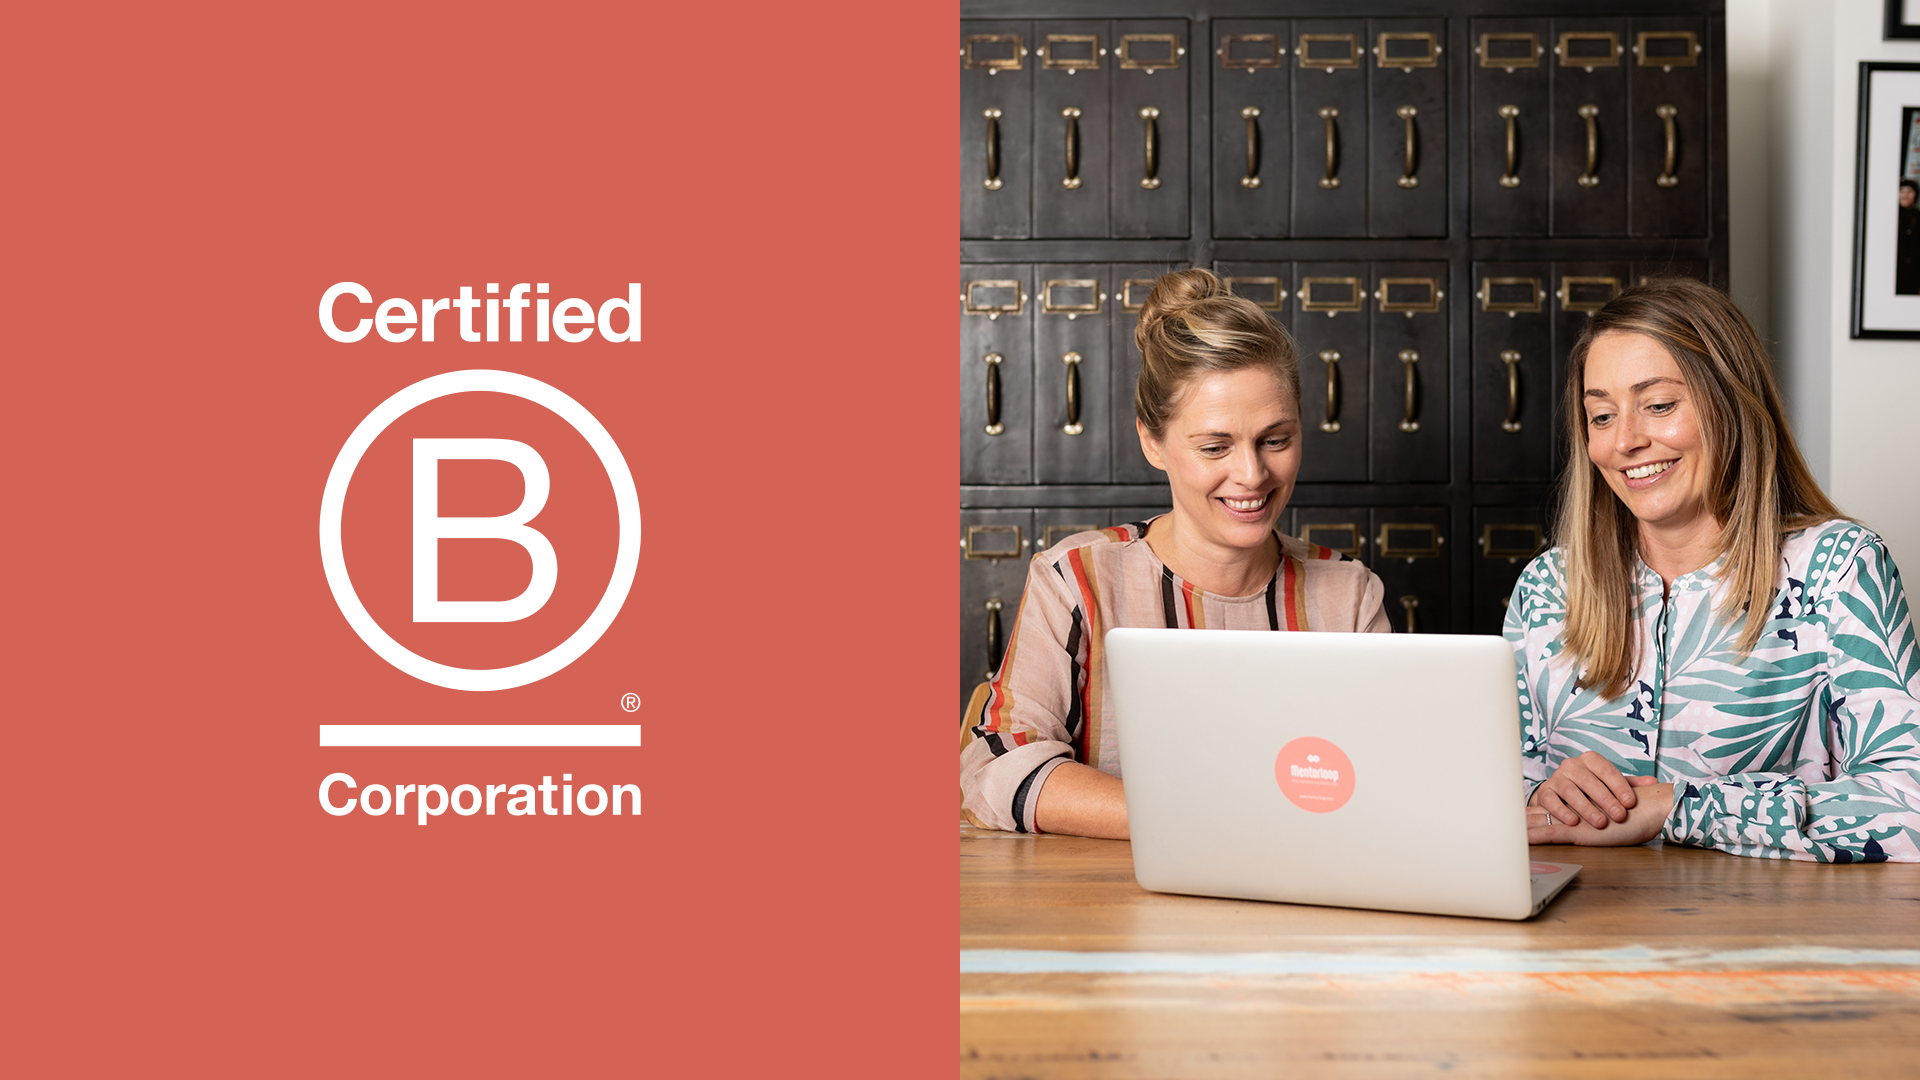 Mentorloop Software - Certified B Corp and Female Founded